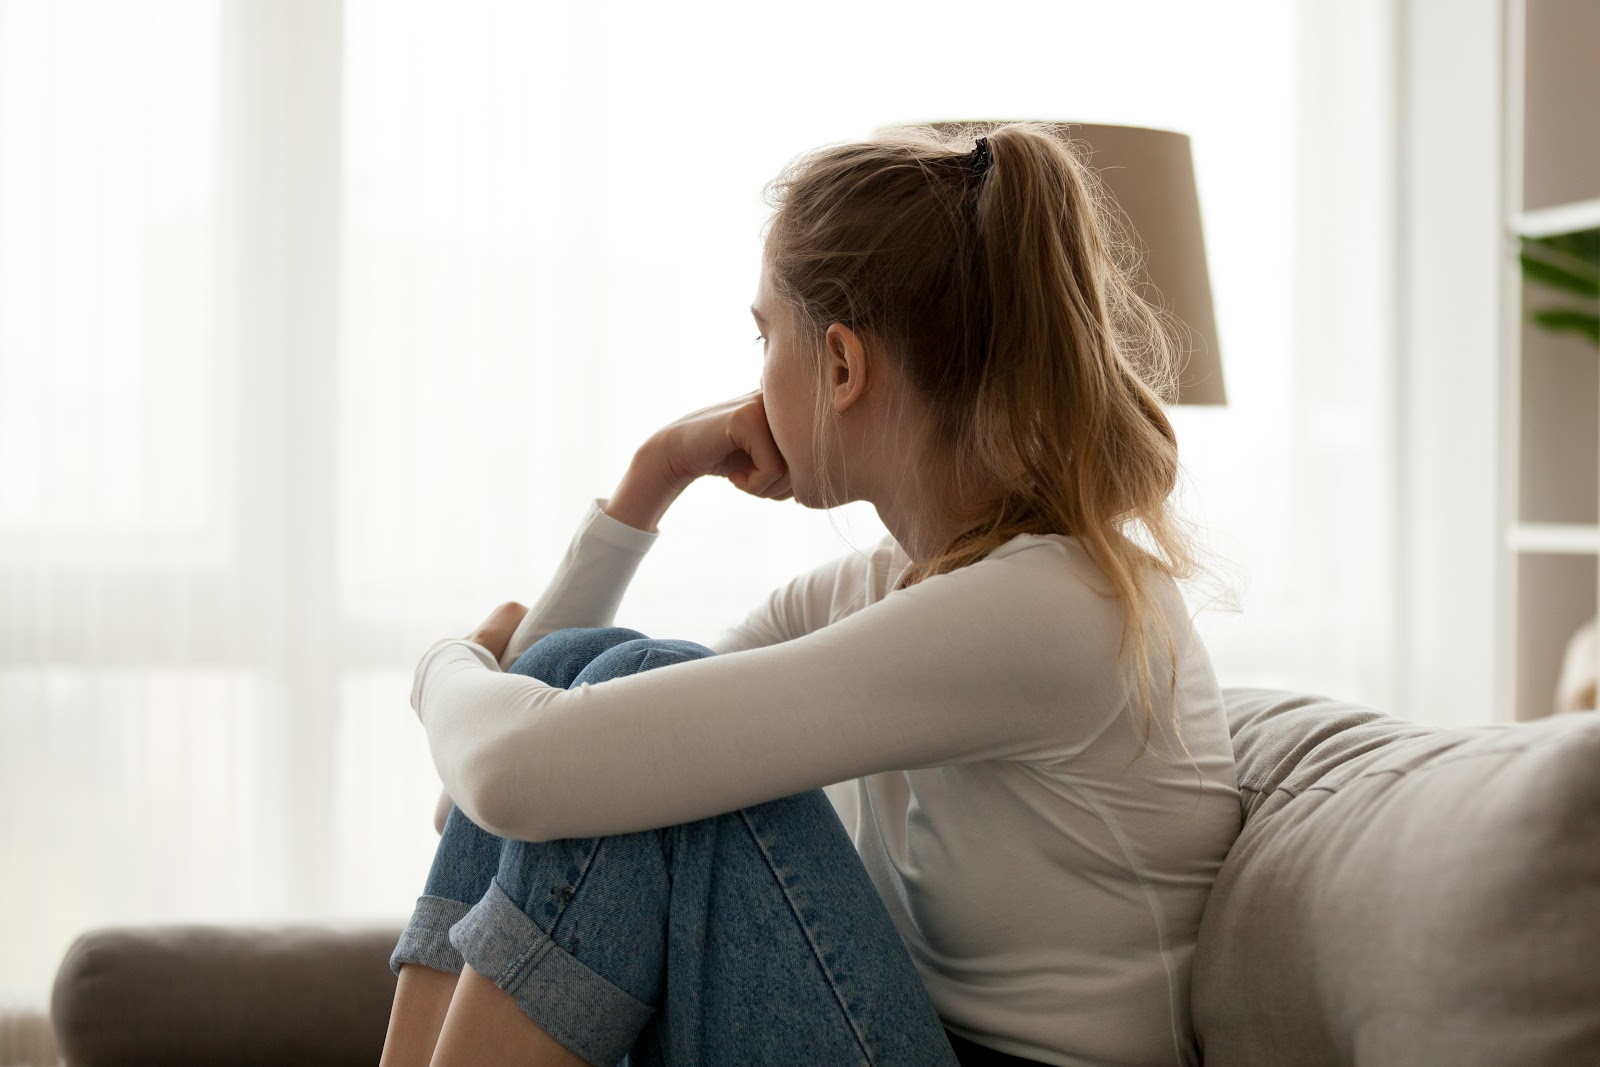 A lonely woman looking out a window while sitting on the couch